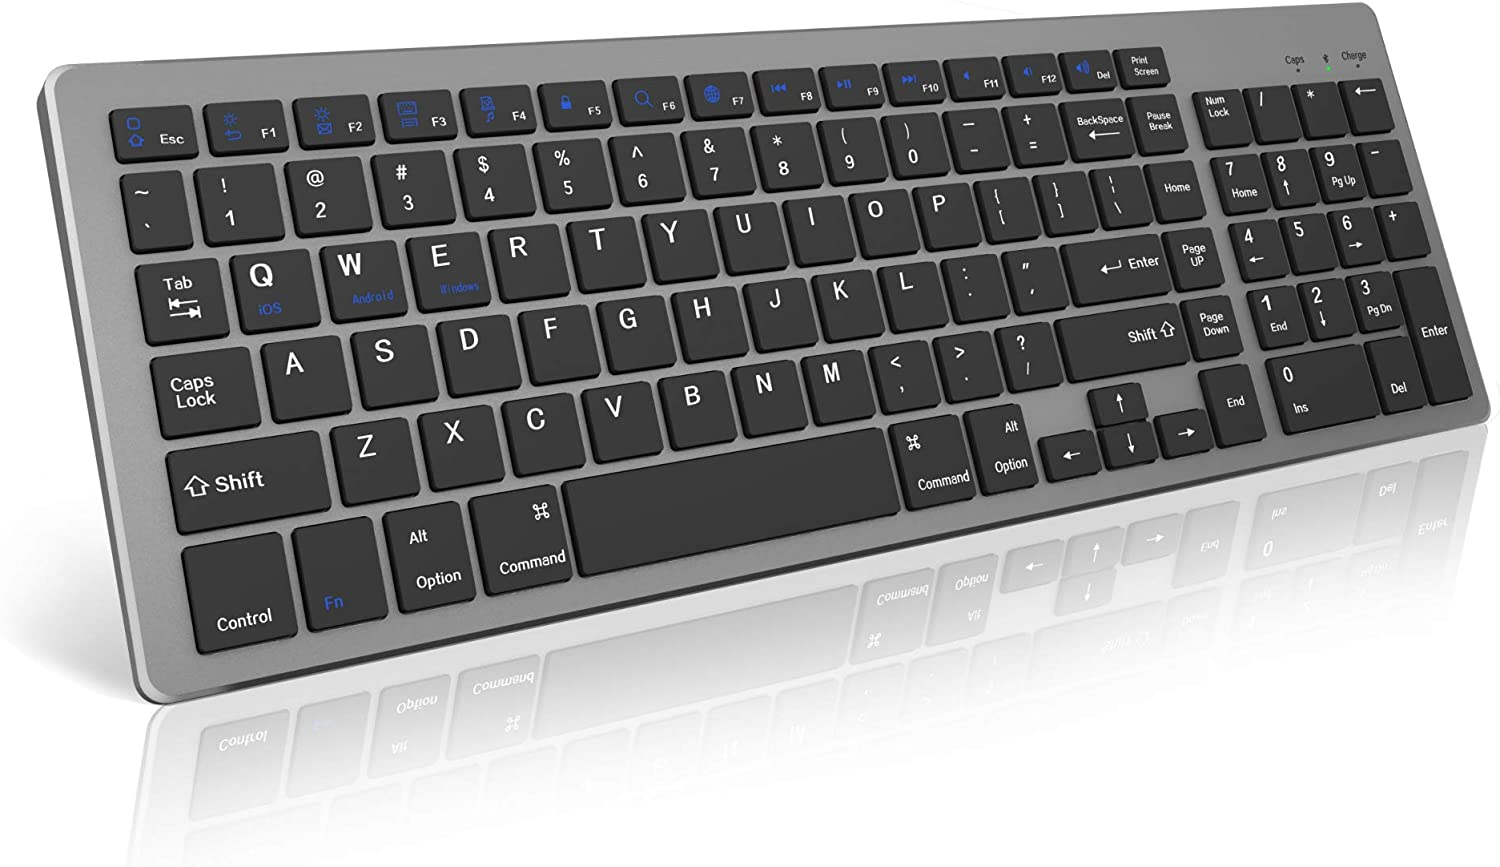 Linwinco Bluetooth Keyboard for Mac,Windows,iPad,Surface,Tablet,Android Rechargeable Slim Full Size Keyboard